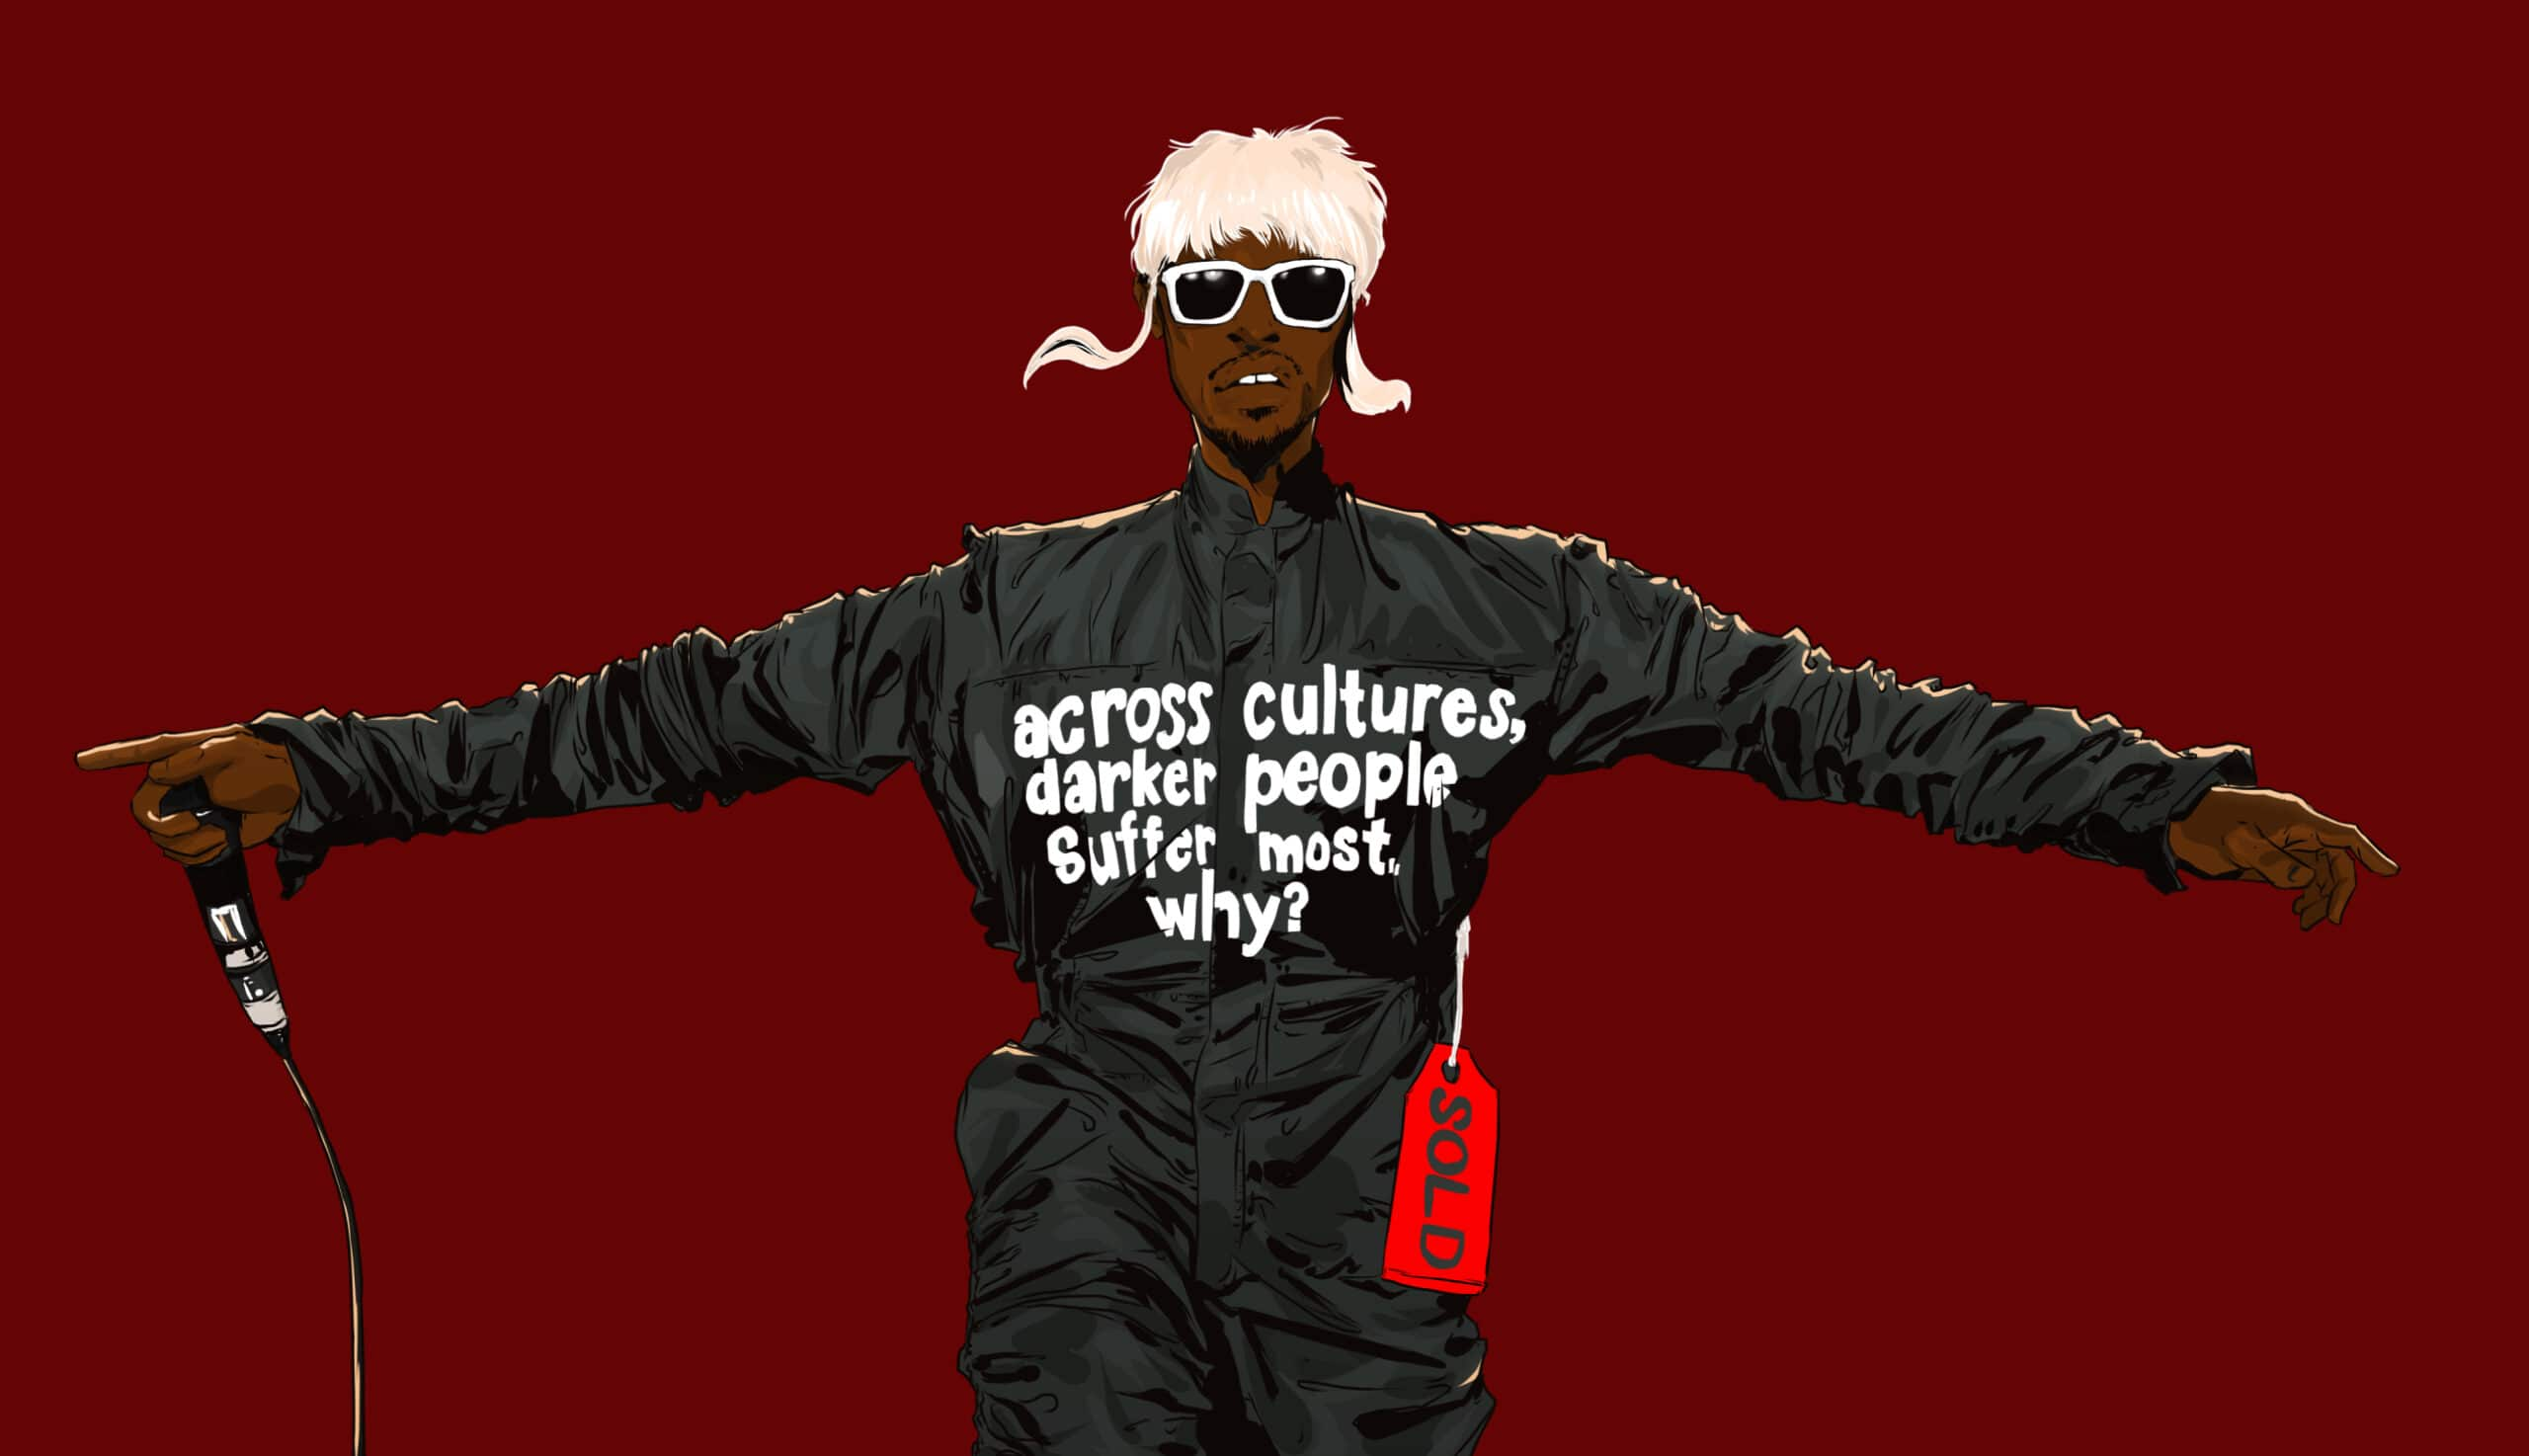 Andre 3000 by Nick Ogri